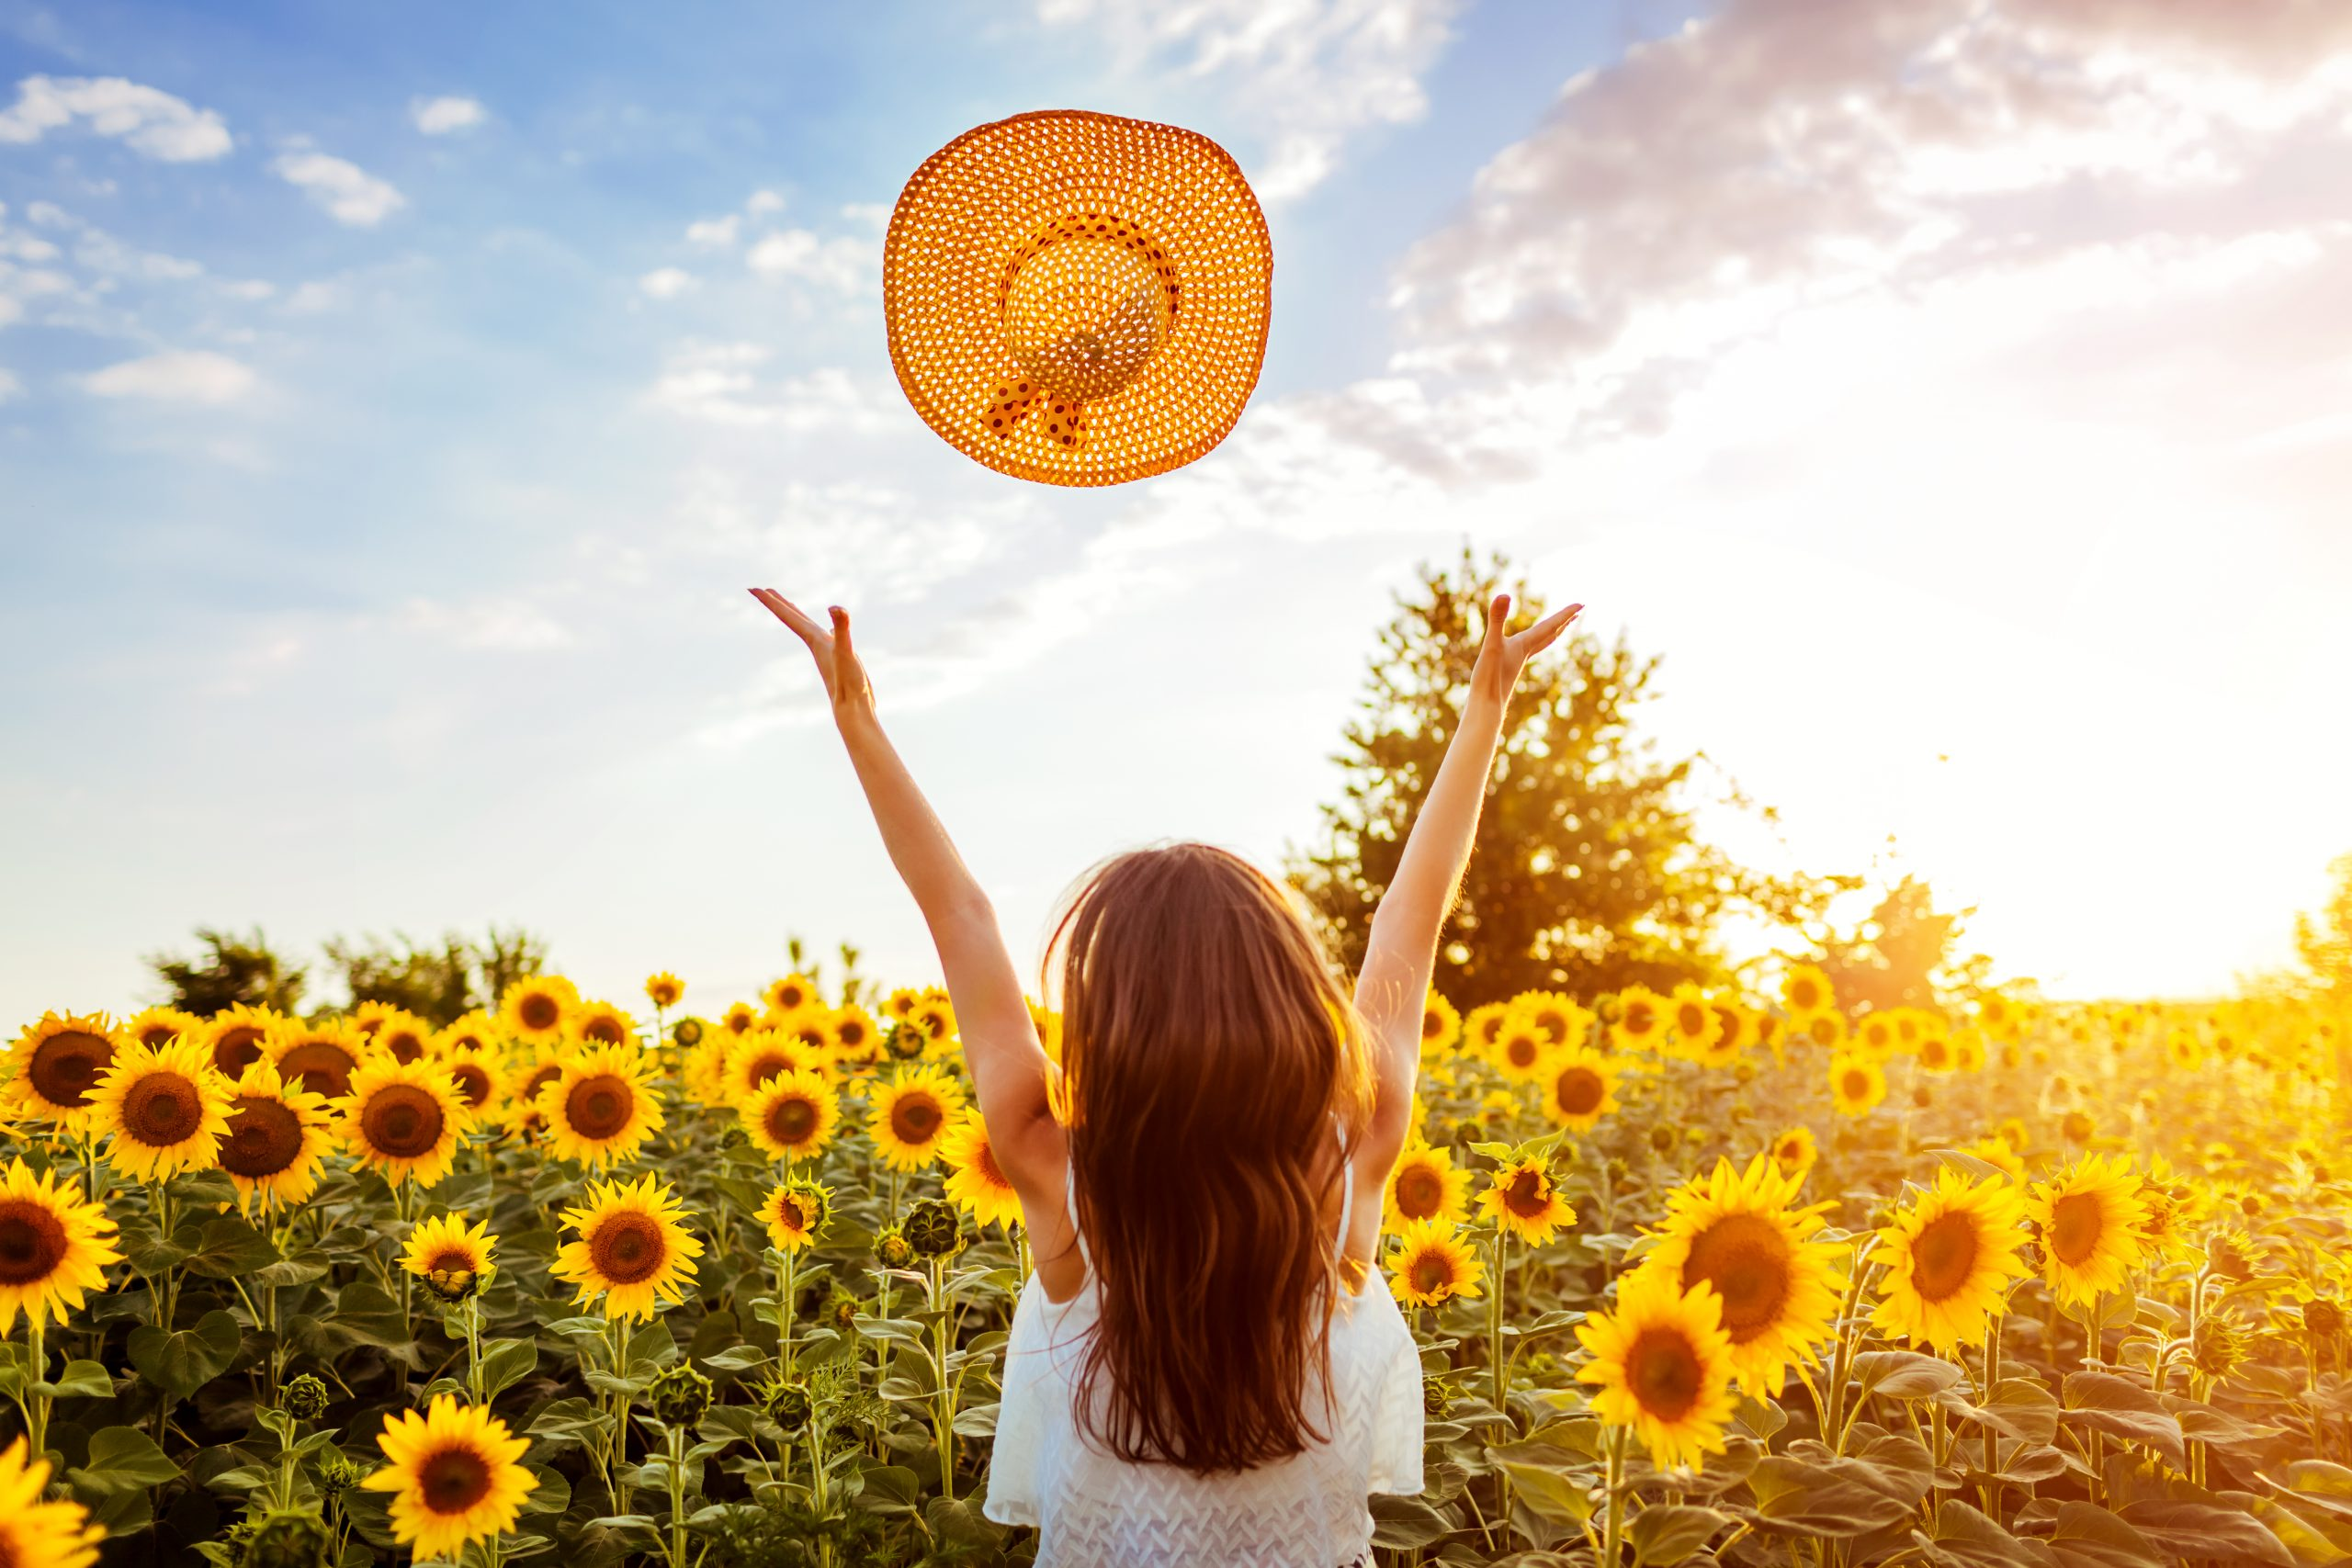 Happy young woman walking in blooming sunflower field throwing hat up and having fun. Summer vacation.